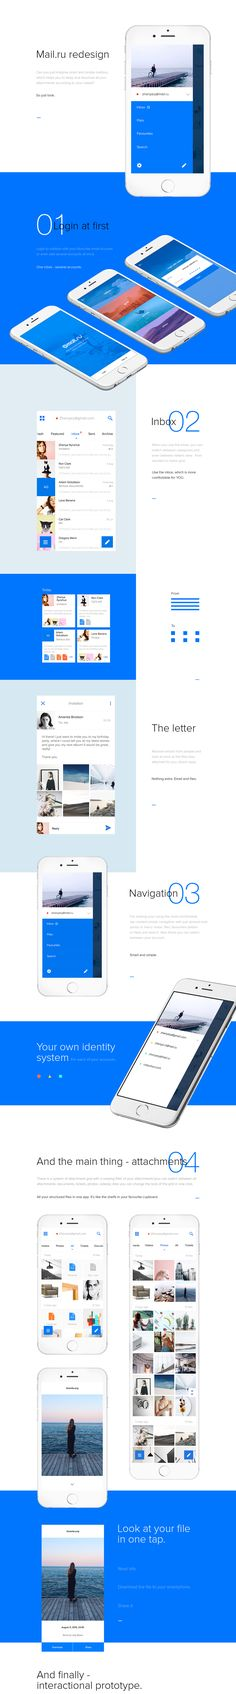 Mail.ru application redesign concept on Behance